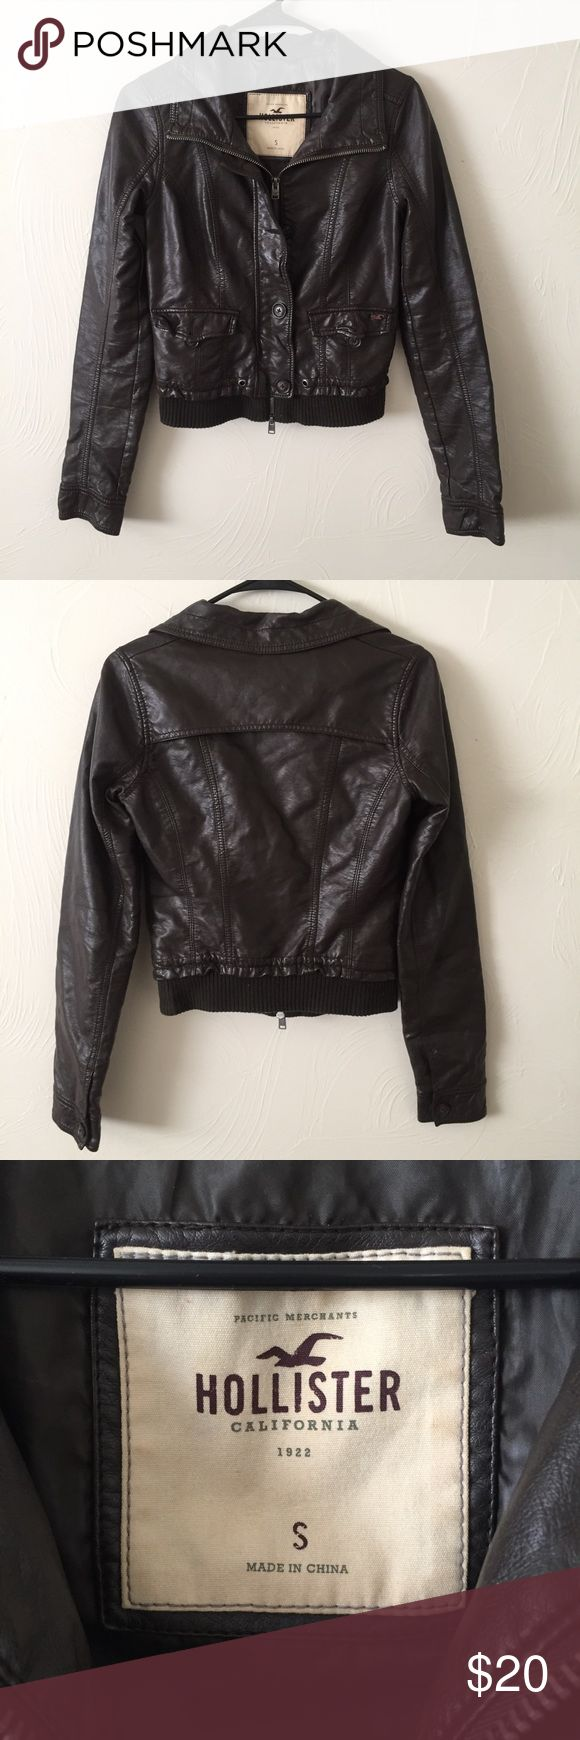 Brown Hollister Bomber Jacket, size small This jacket fits like a glove! Brown with a few blemishes but still in great condition. Faux leather. Snug fit. Hollister Jackets & Coats Utility Jackets